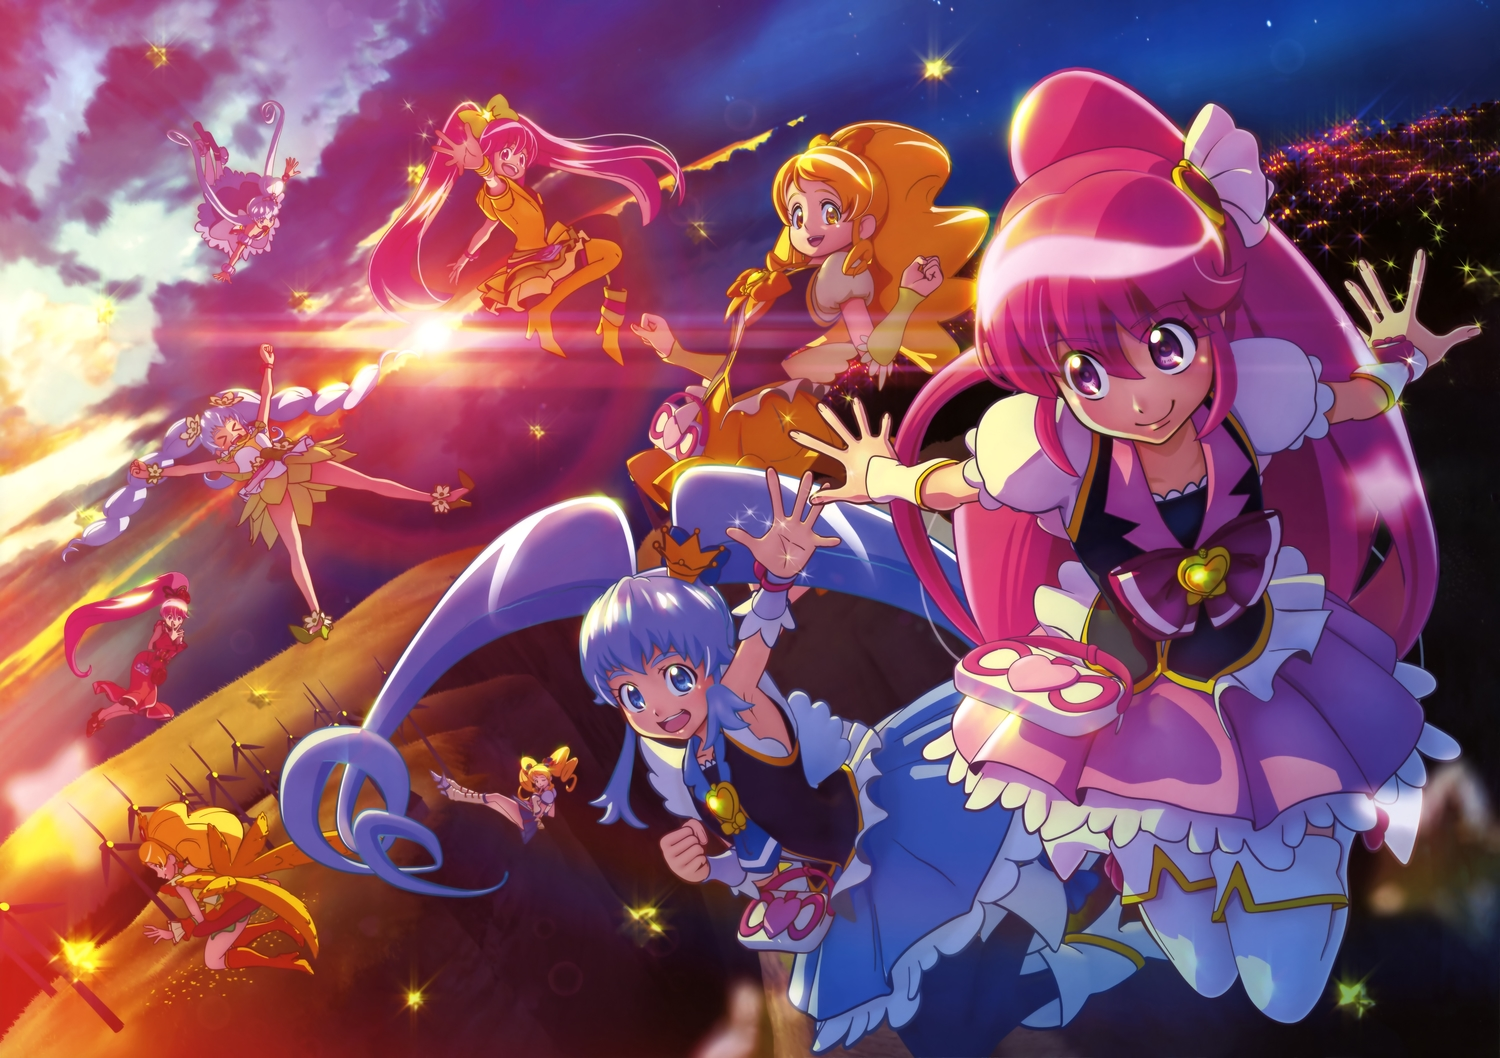 happinesscharge_precure! precure scan sunset tagme